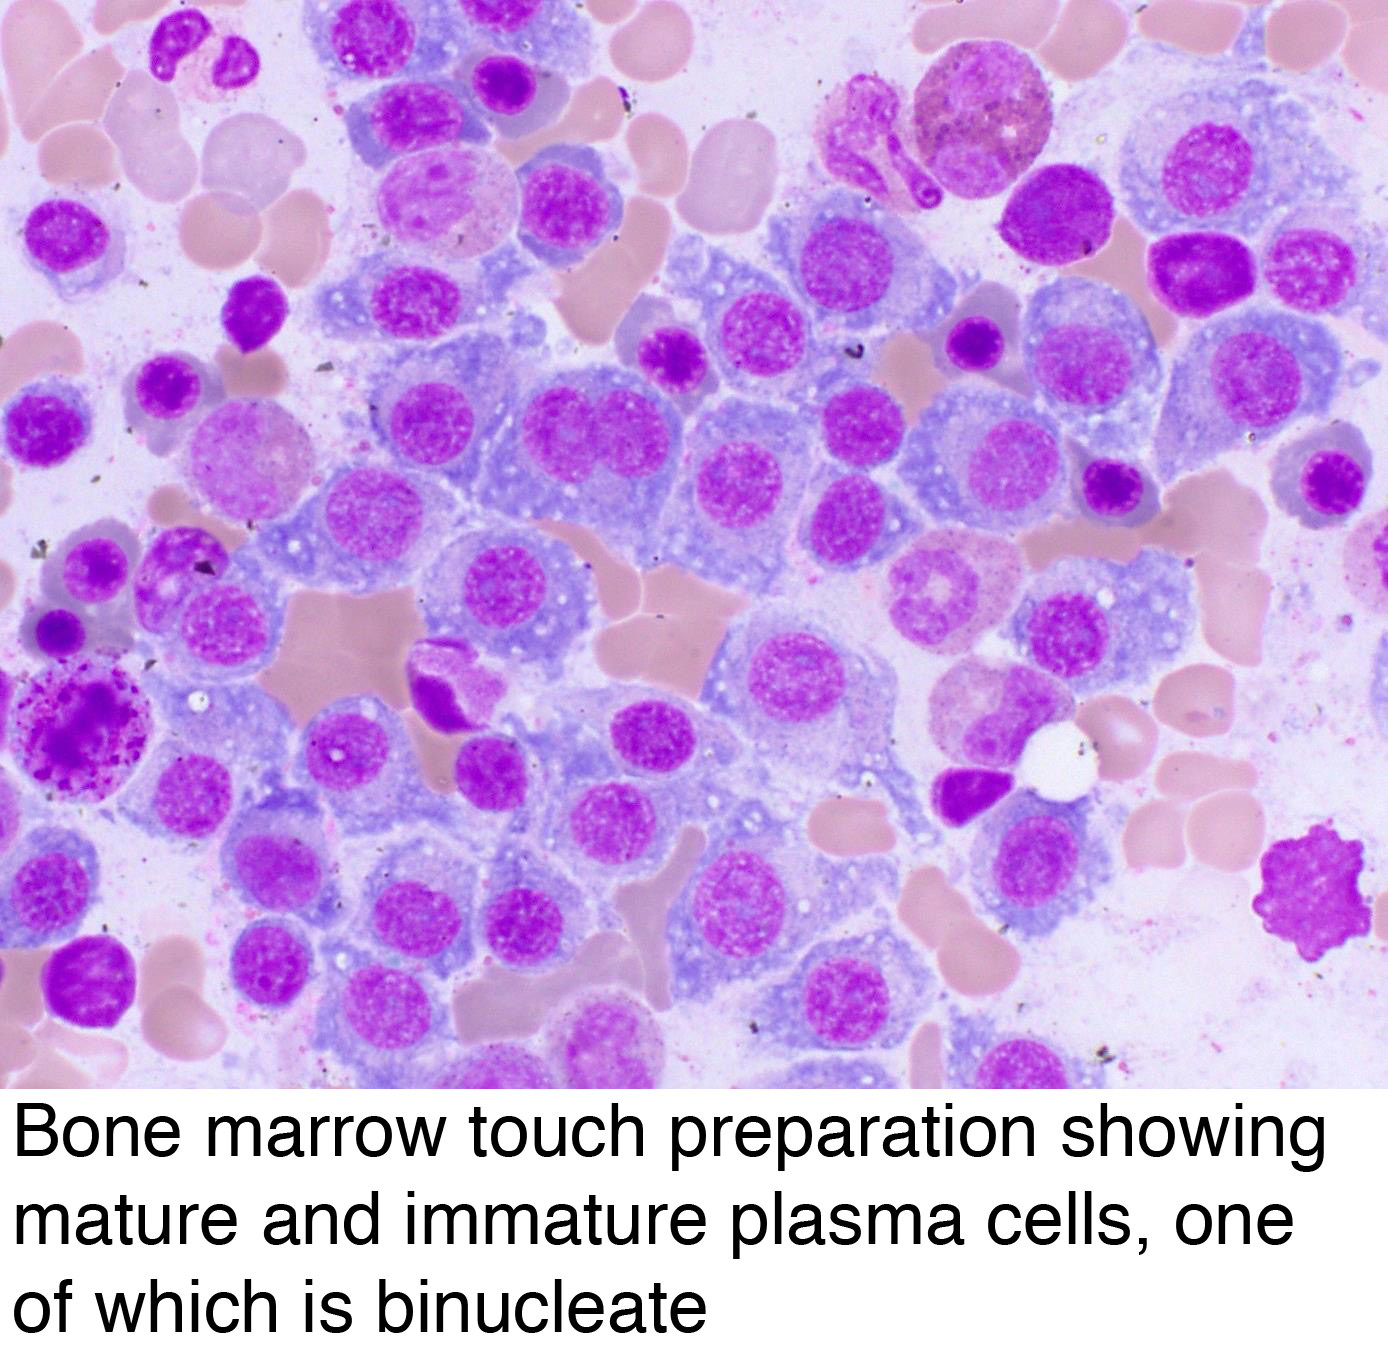 Pathology Outlines - Plasma cell myeloma (multiple myeloma)